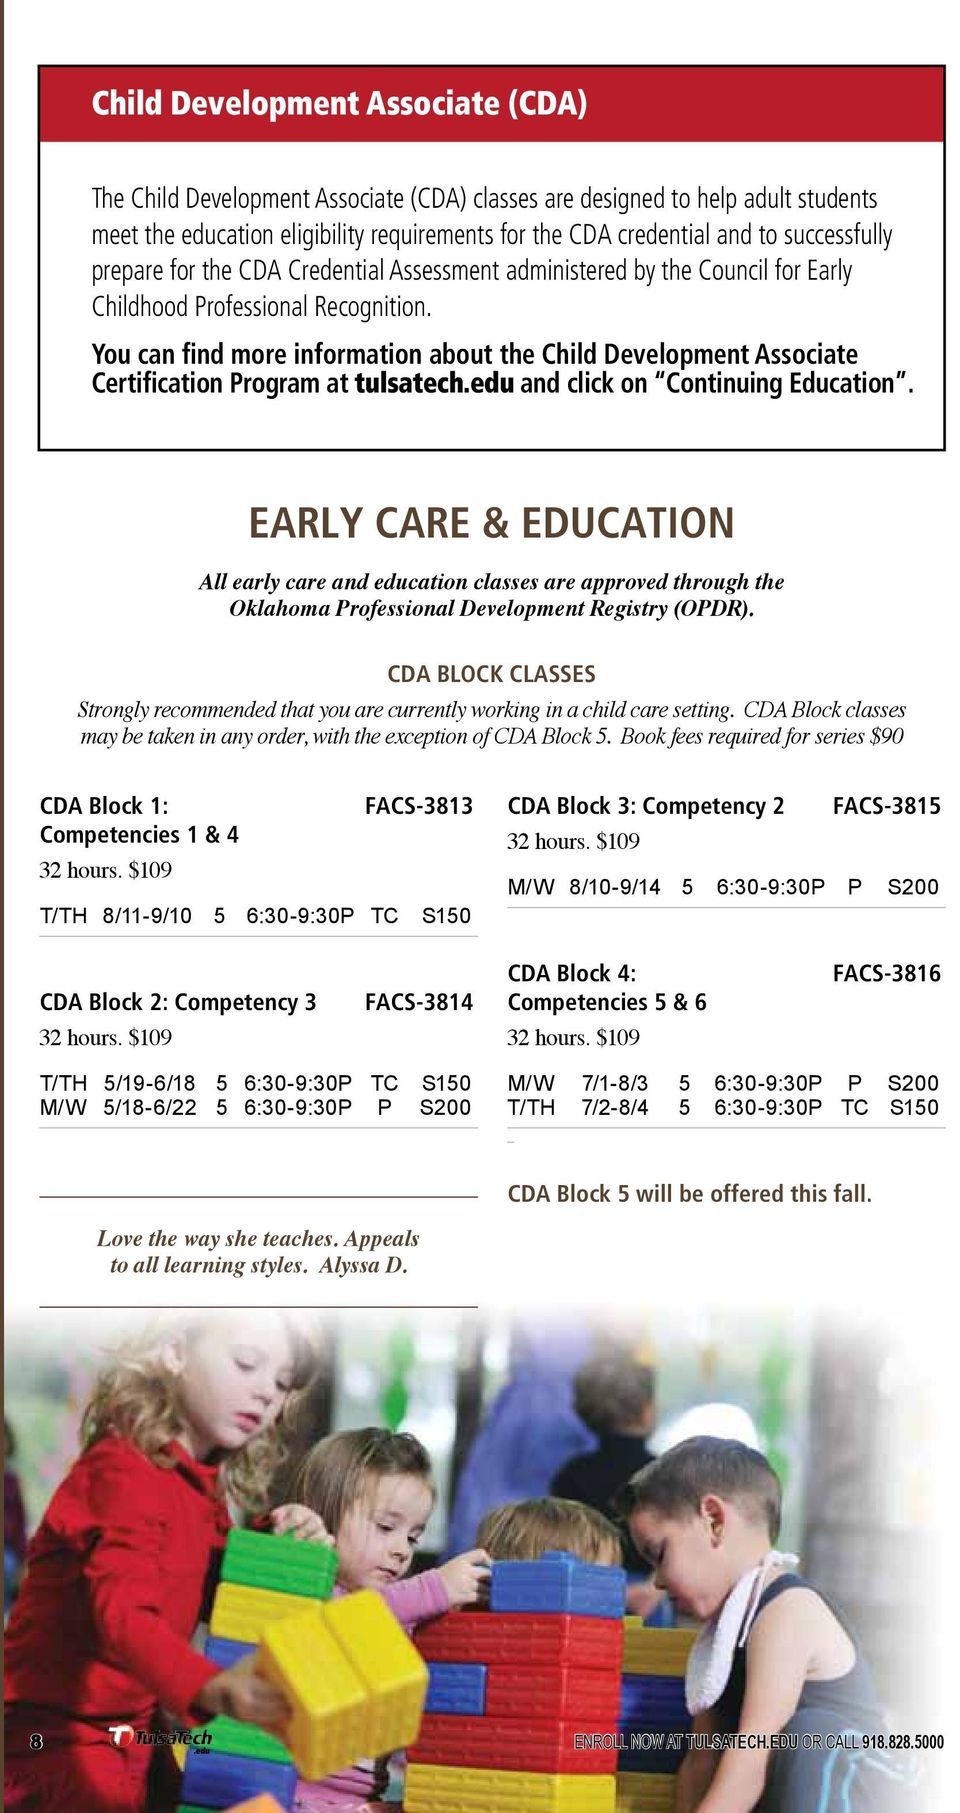 You can find more information about the Child Development Associate Certification Program at tulsatech.edu and click on Continuing Education.